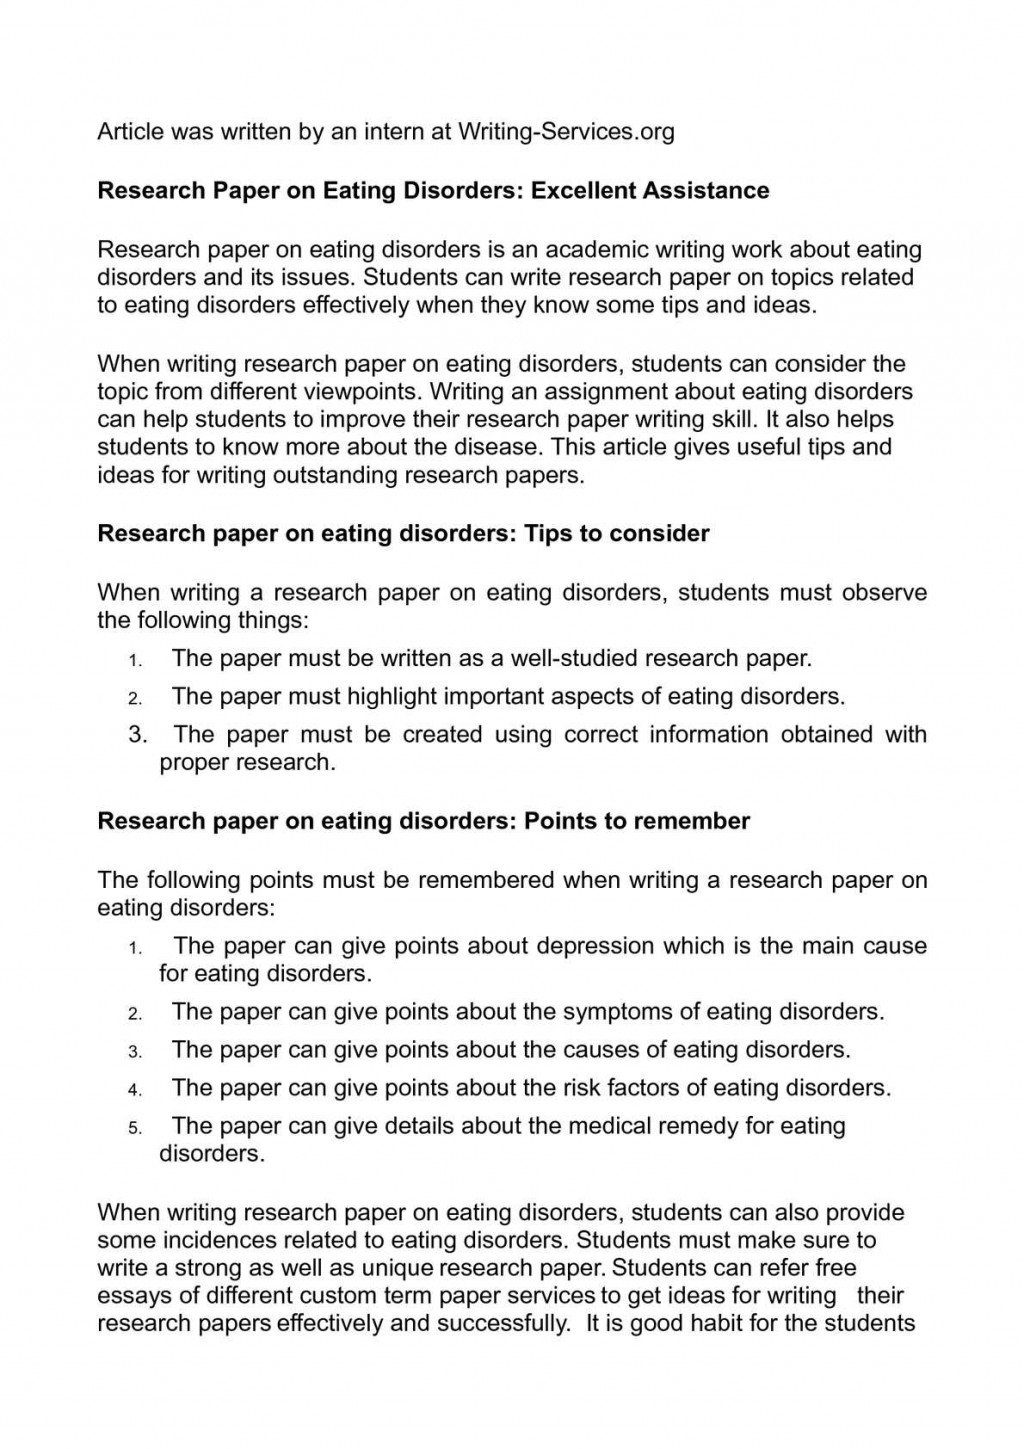 001 P1 Research Paper On Eating Wonderful Disorders Topics Articles And The Media Large